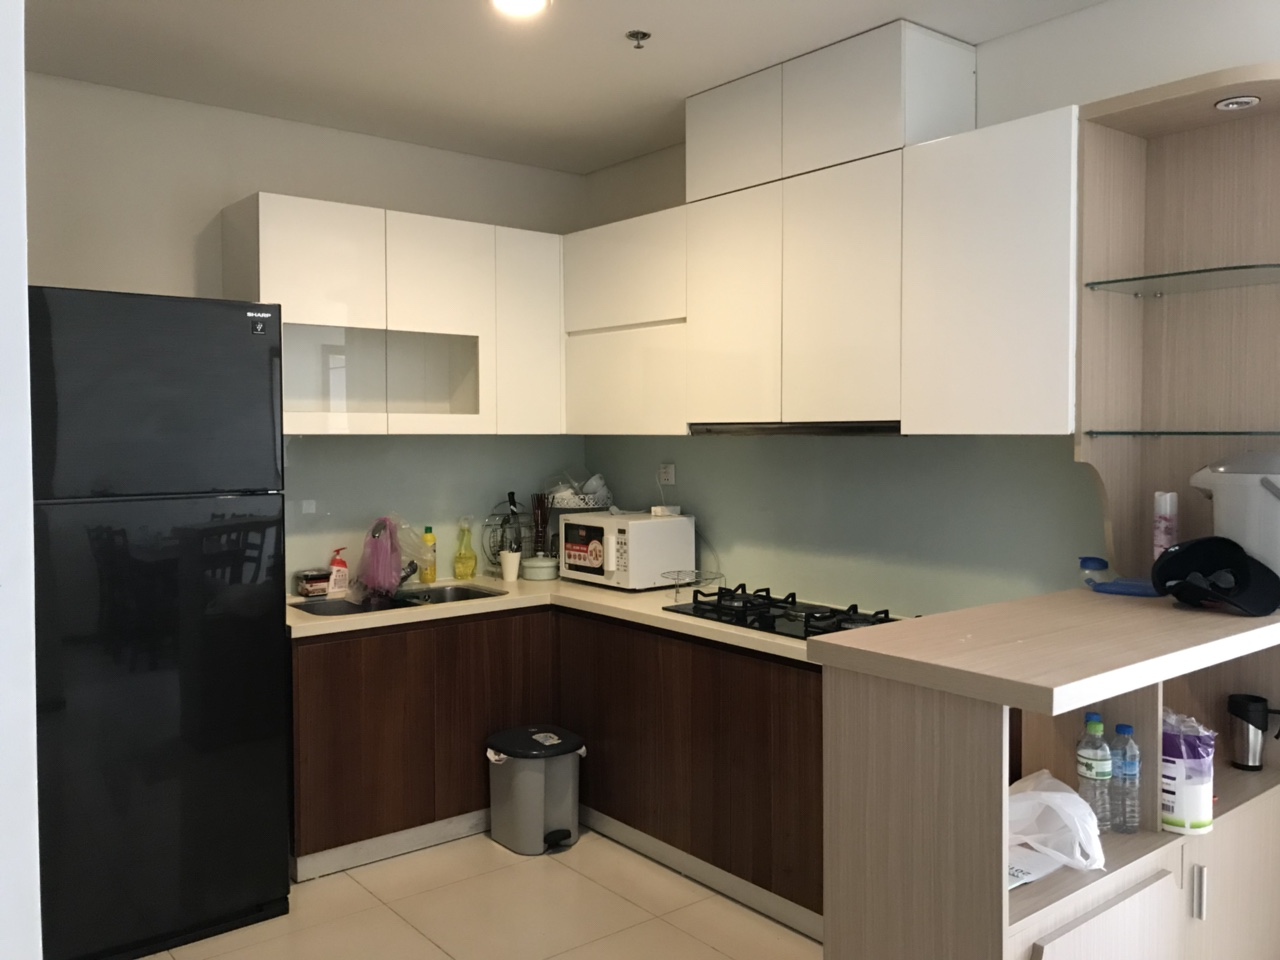 Thaodien pearl apartment for rent in district 2 hcmc D204125 (8)